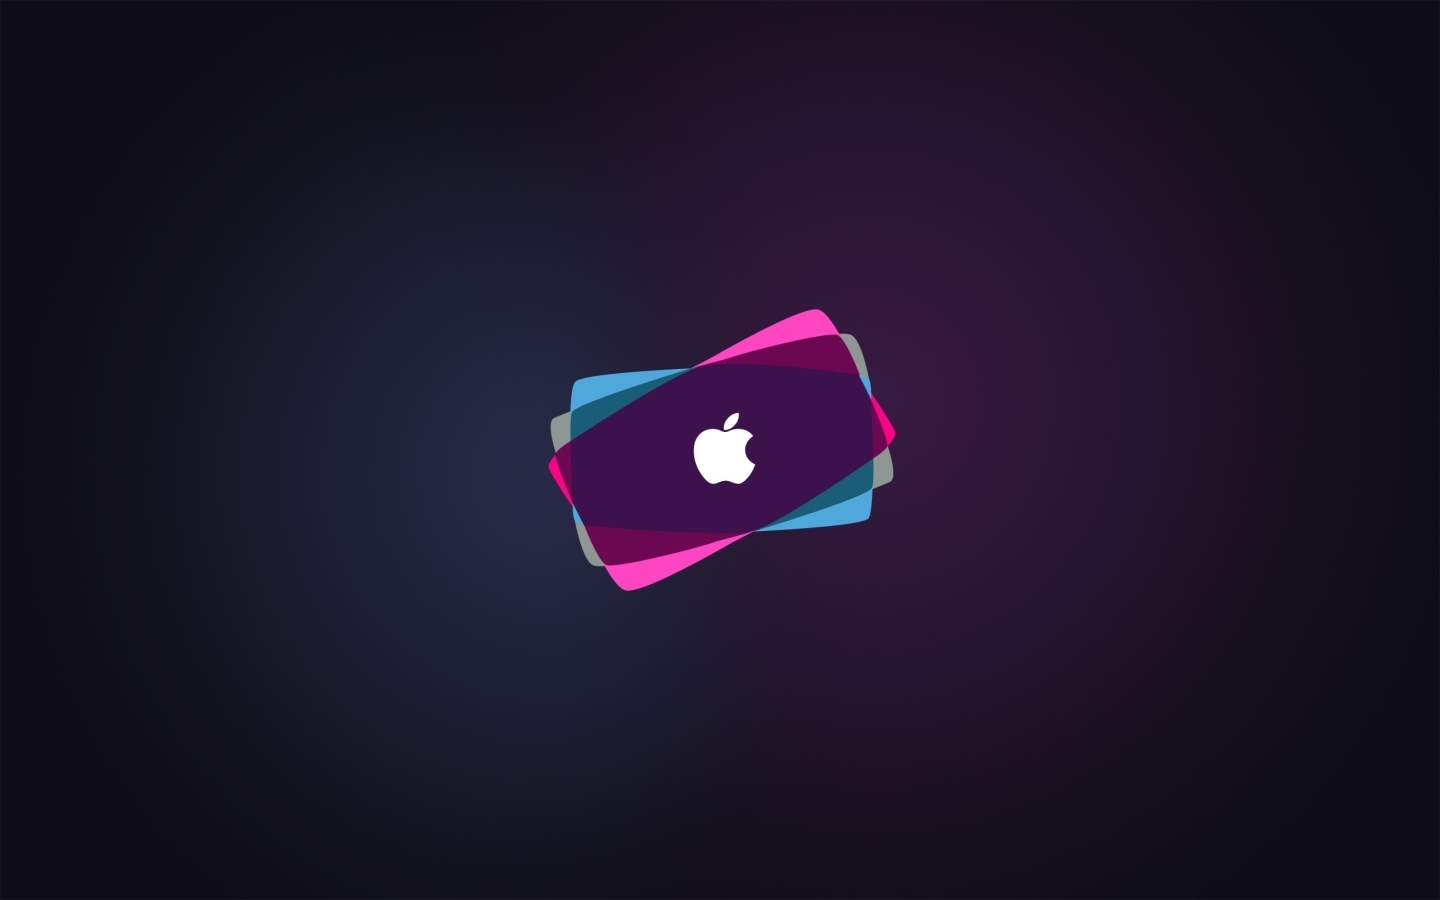 Wallpapers for macbook pro 13 22 wallpapers adorable - Wallpaper for mac pro 13 ...